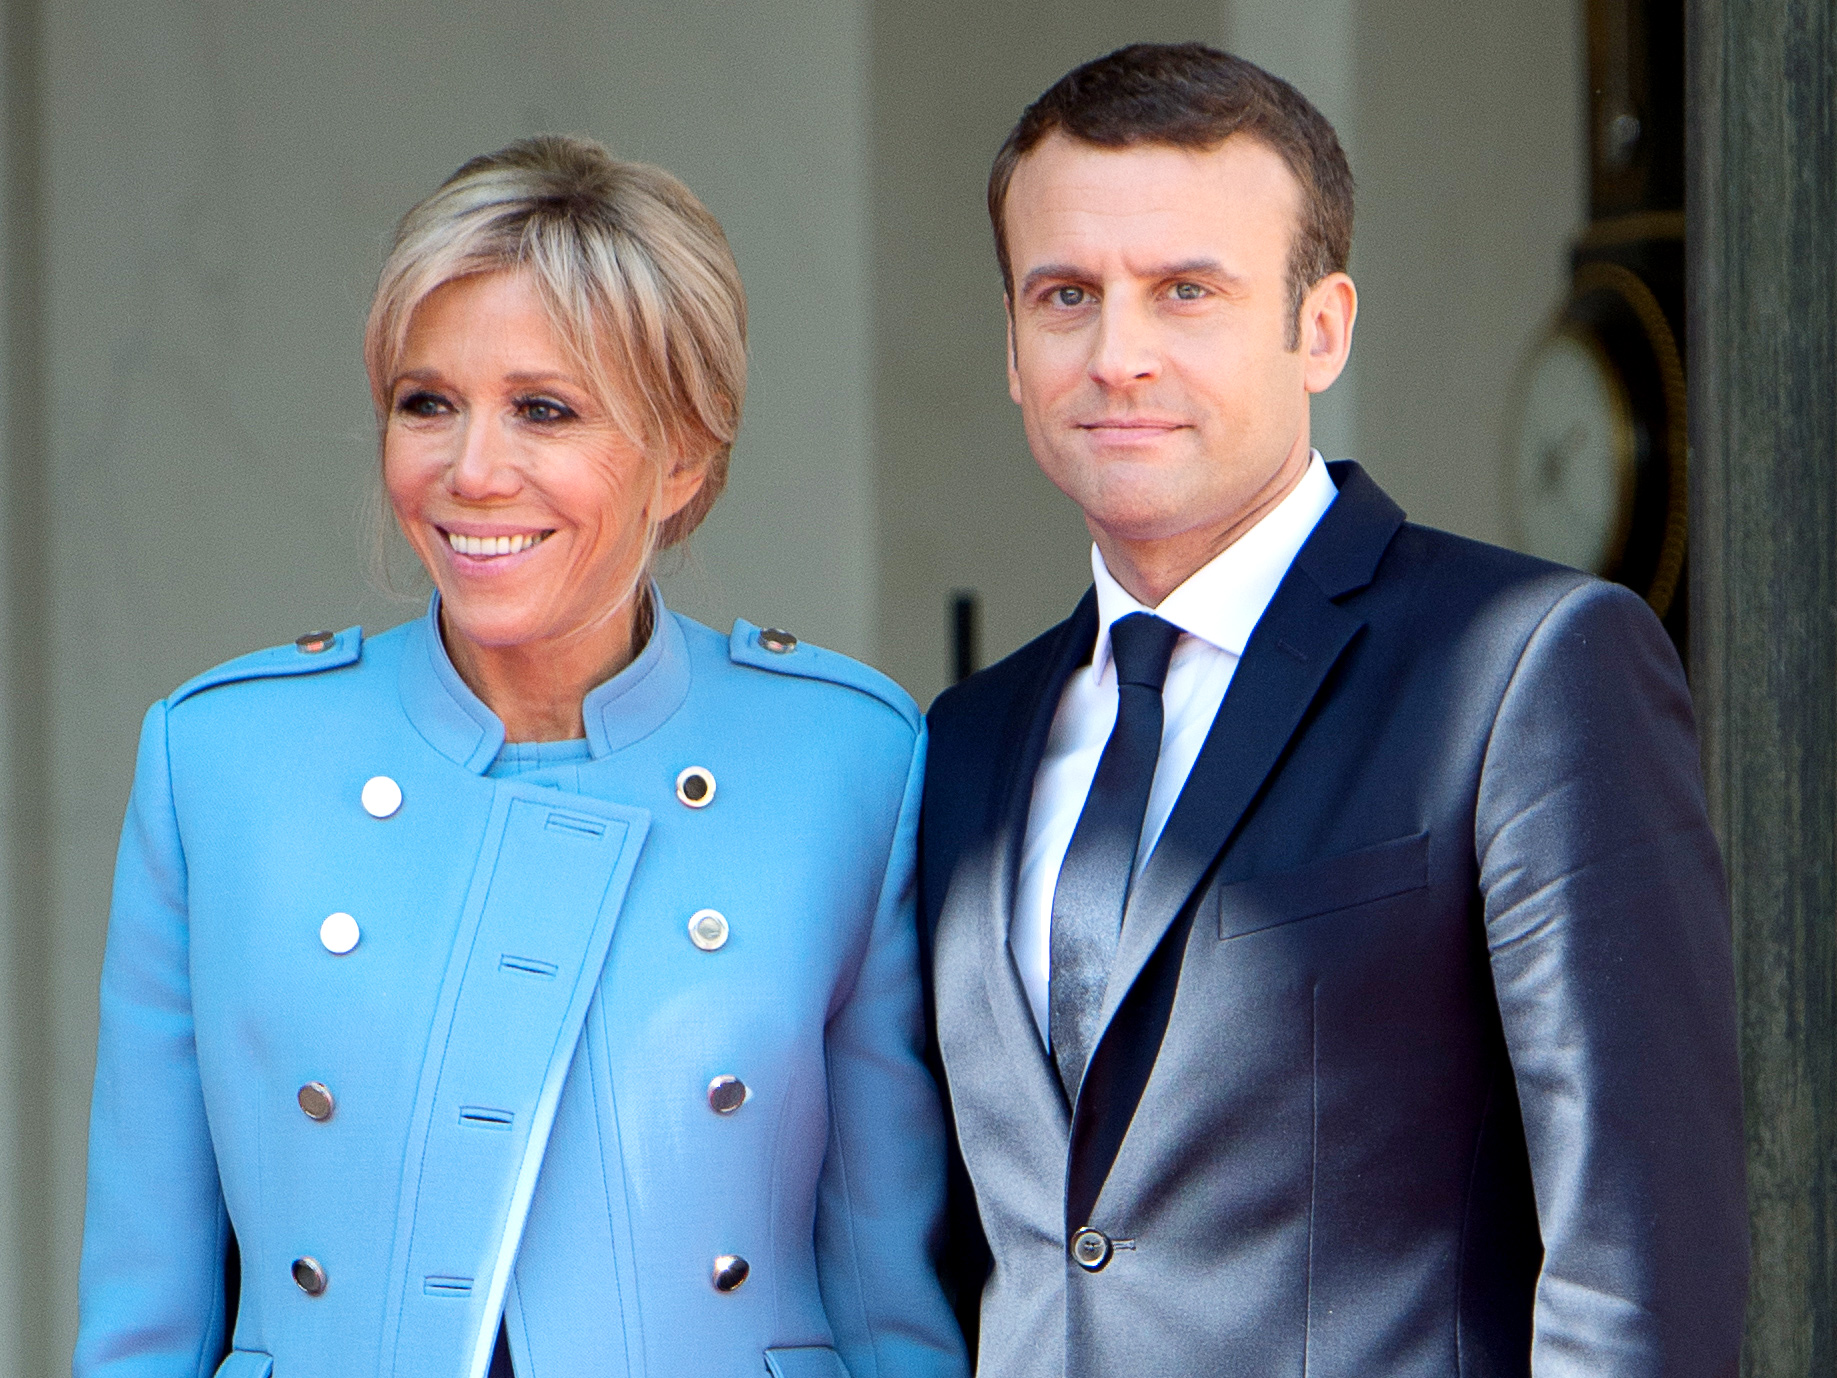 PARIS, FRANCE - MAY 14: French newly elected President Emmanuel Macron poses with his Wife Brigitte Macron at the Elysee presidential Palace after the handover ceremony with his predecessor Francois Hollande at Elysee Palace on May 14, 2017 in Paris, France. Emmanuel Macron was elected President of the French Republic on May 07, 2017 with 66,1 % of the votes cast at Elysee Palace on May 14, 2017 in Paris, France. (Photo by Thierry Orban/Getty Images)